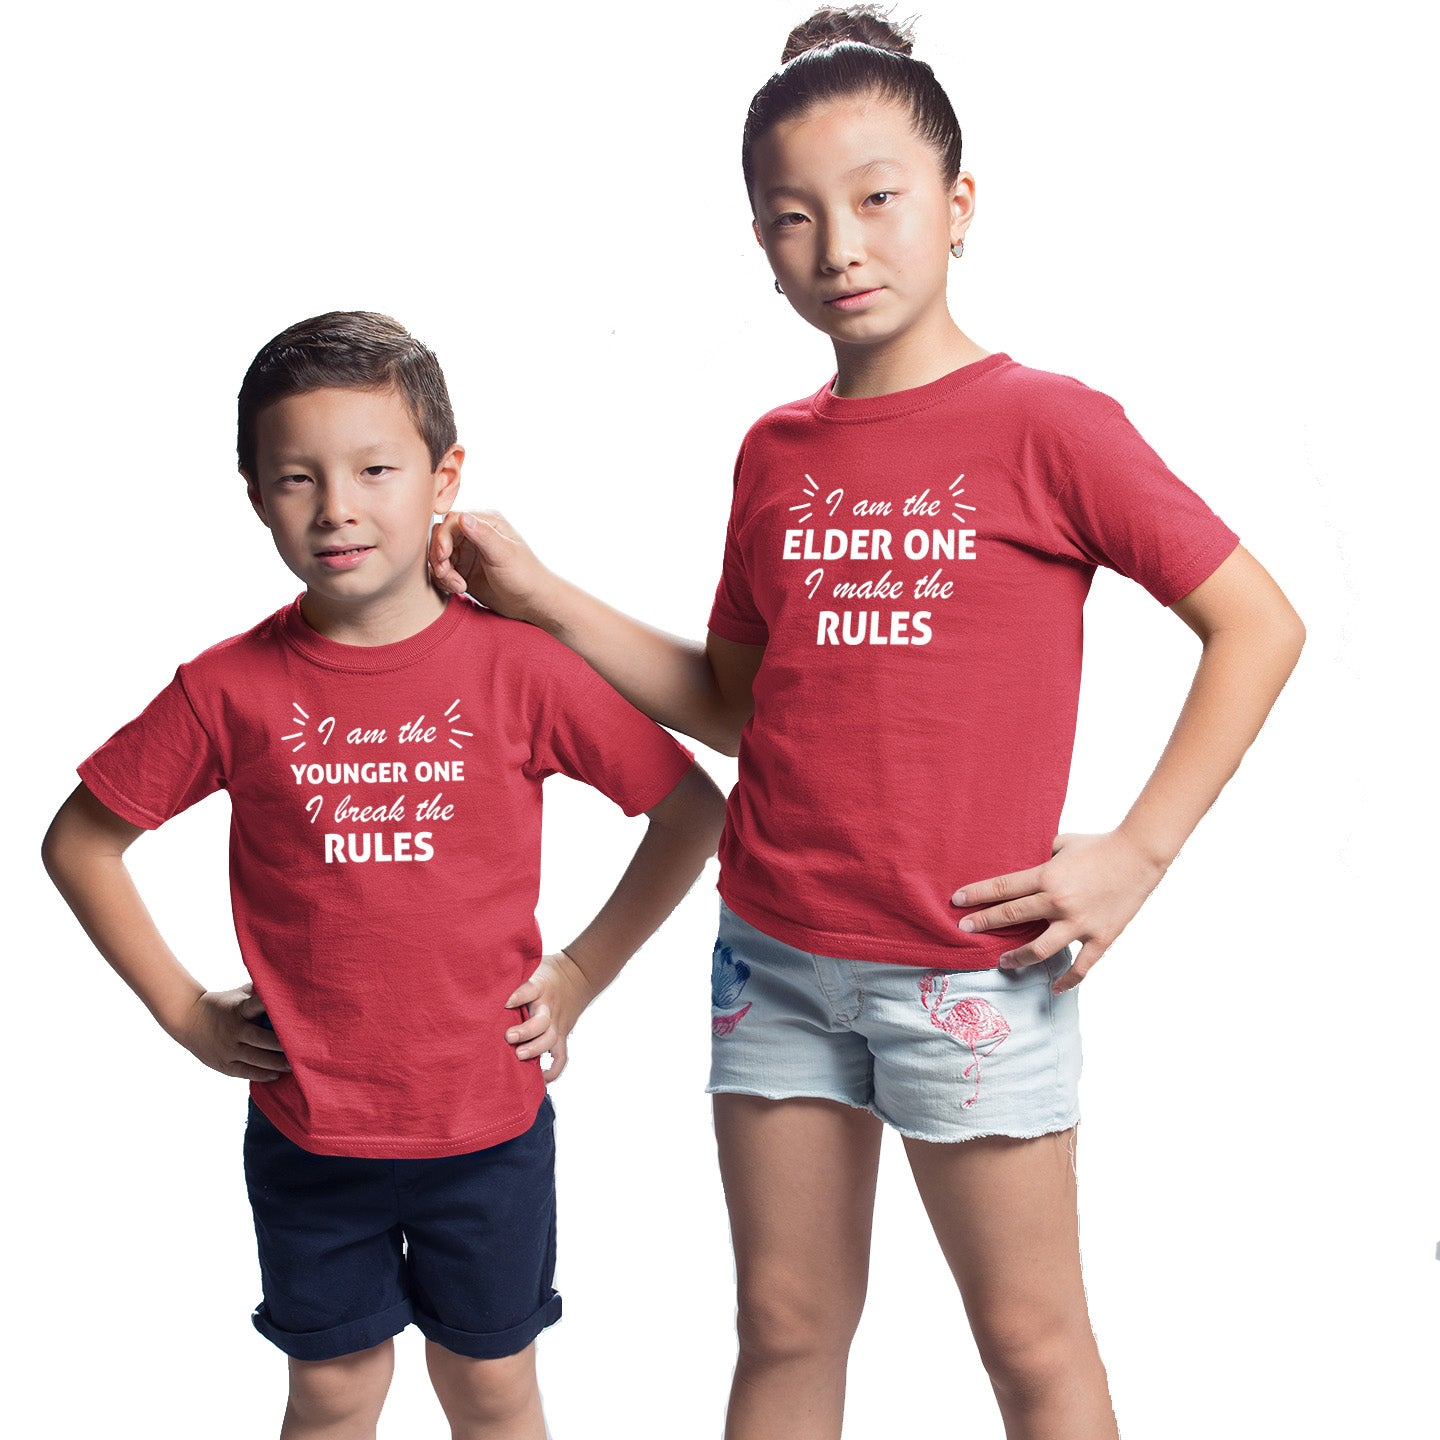 Sprinklecart I am The Elder One I Make The Rule I Am The Younger One I Break The Rules Printed Kids Cotton T Shirts (Red)